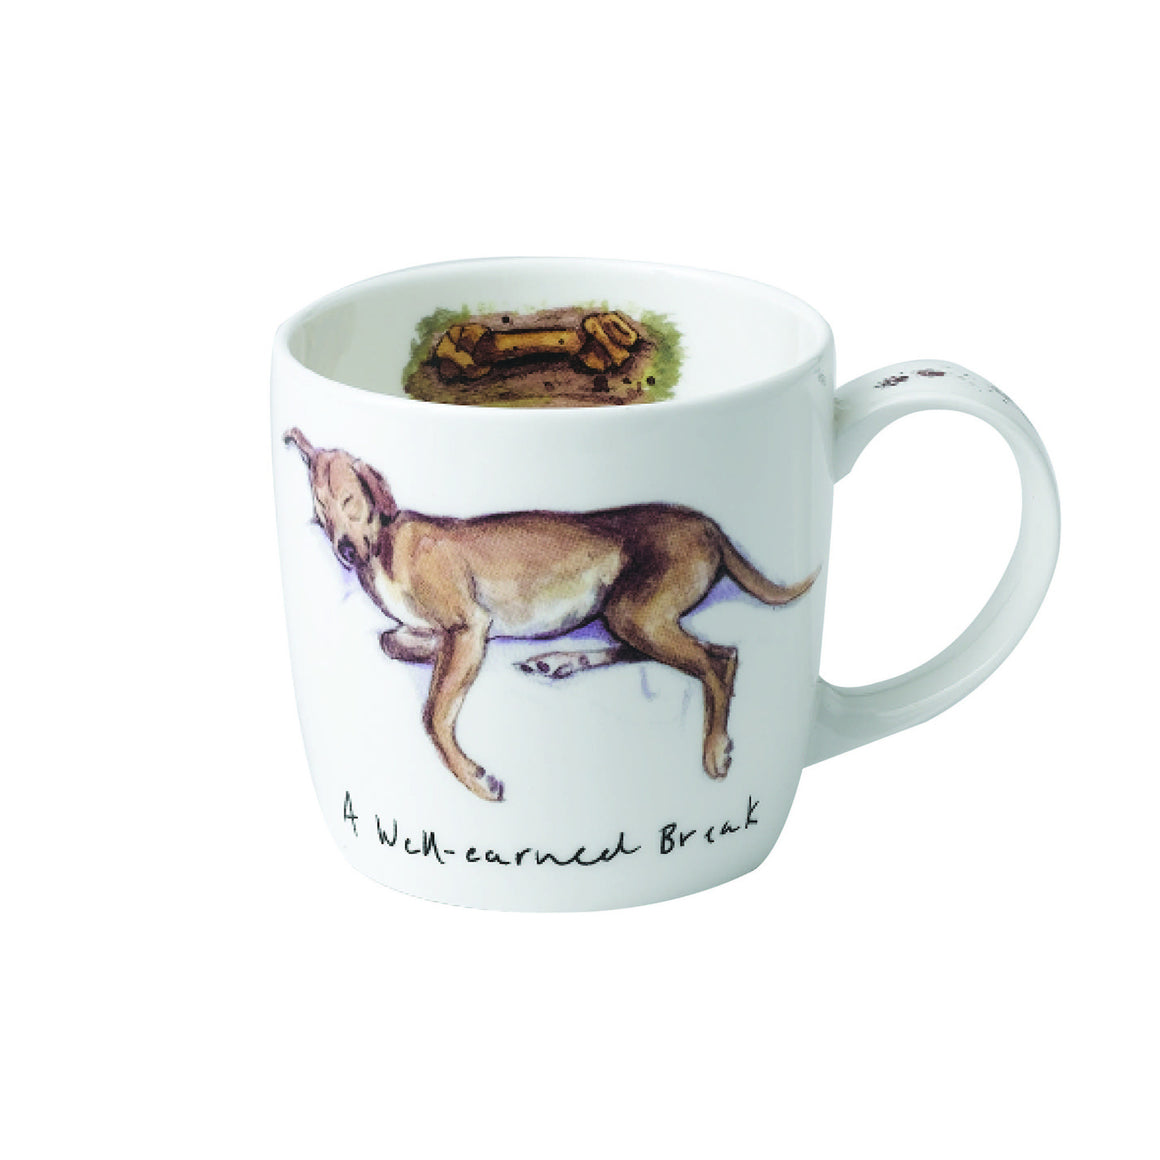 Katherine Tyrer 'A Well Earned Break' fine bone china york mug